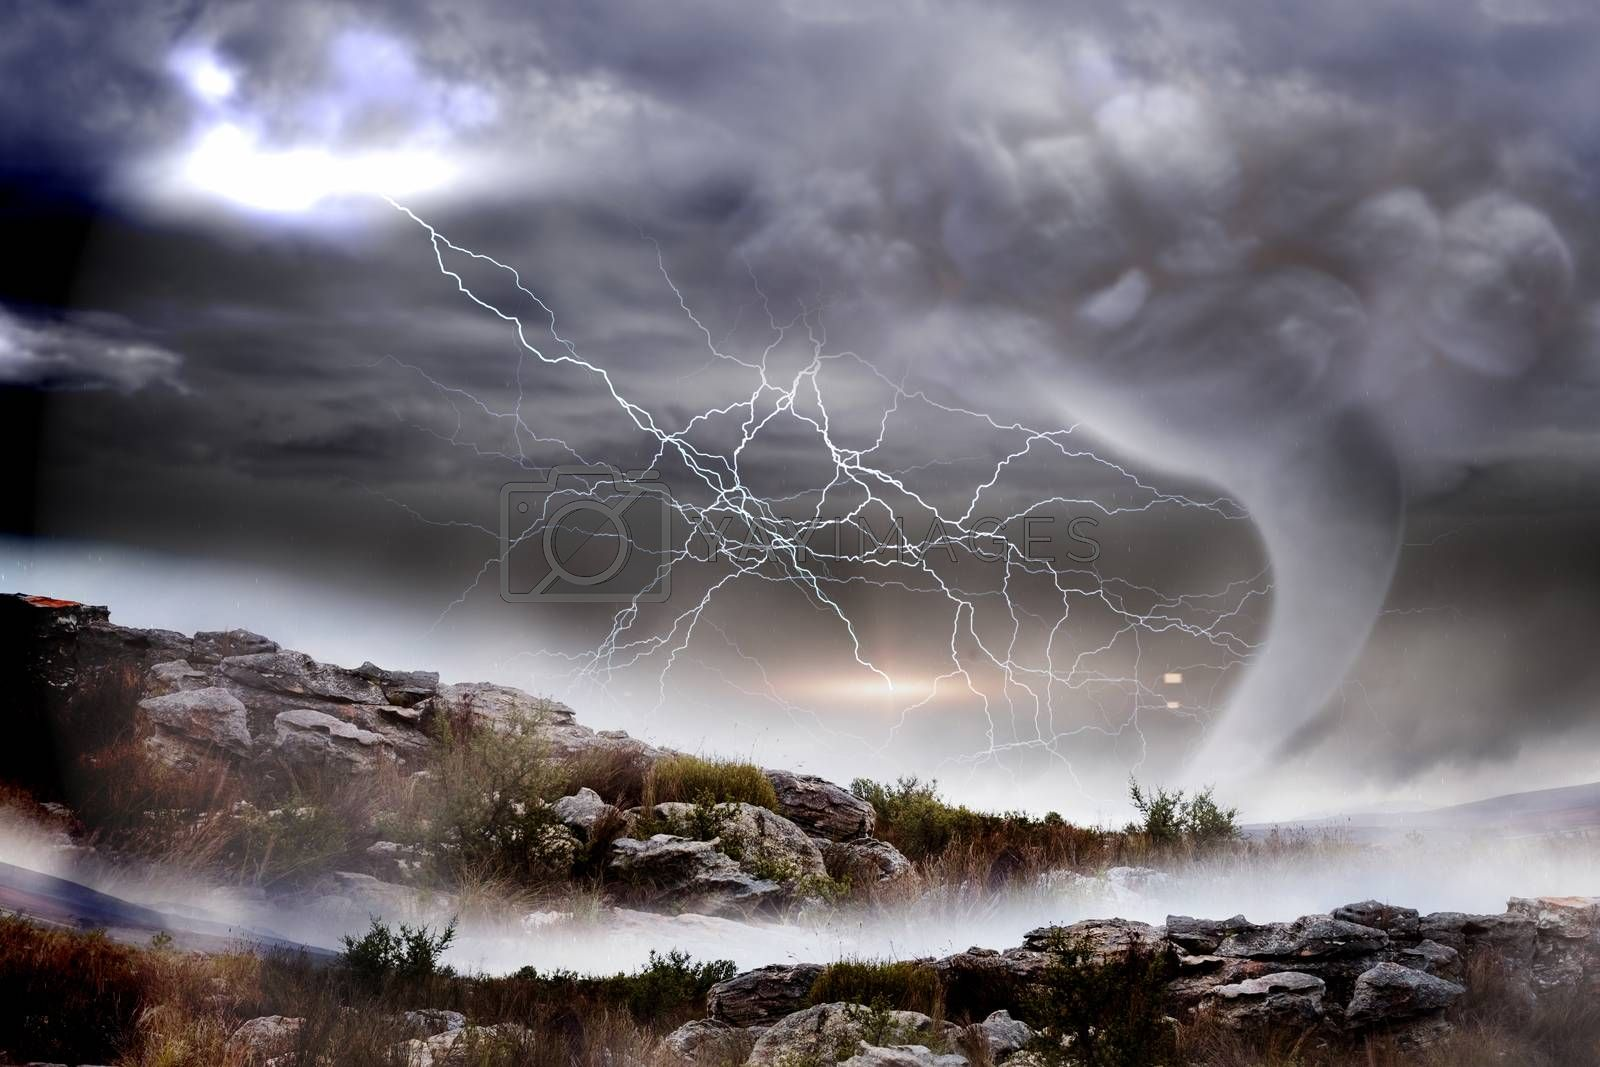 Royalty free image of Stormy sky with tornado over landscape by Wavebreakmedia